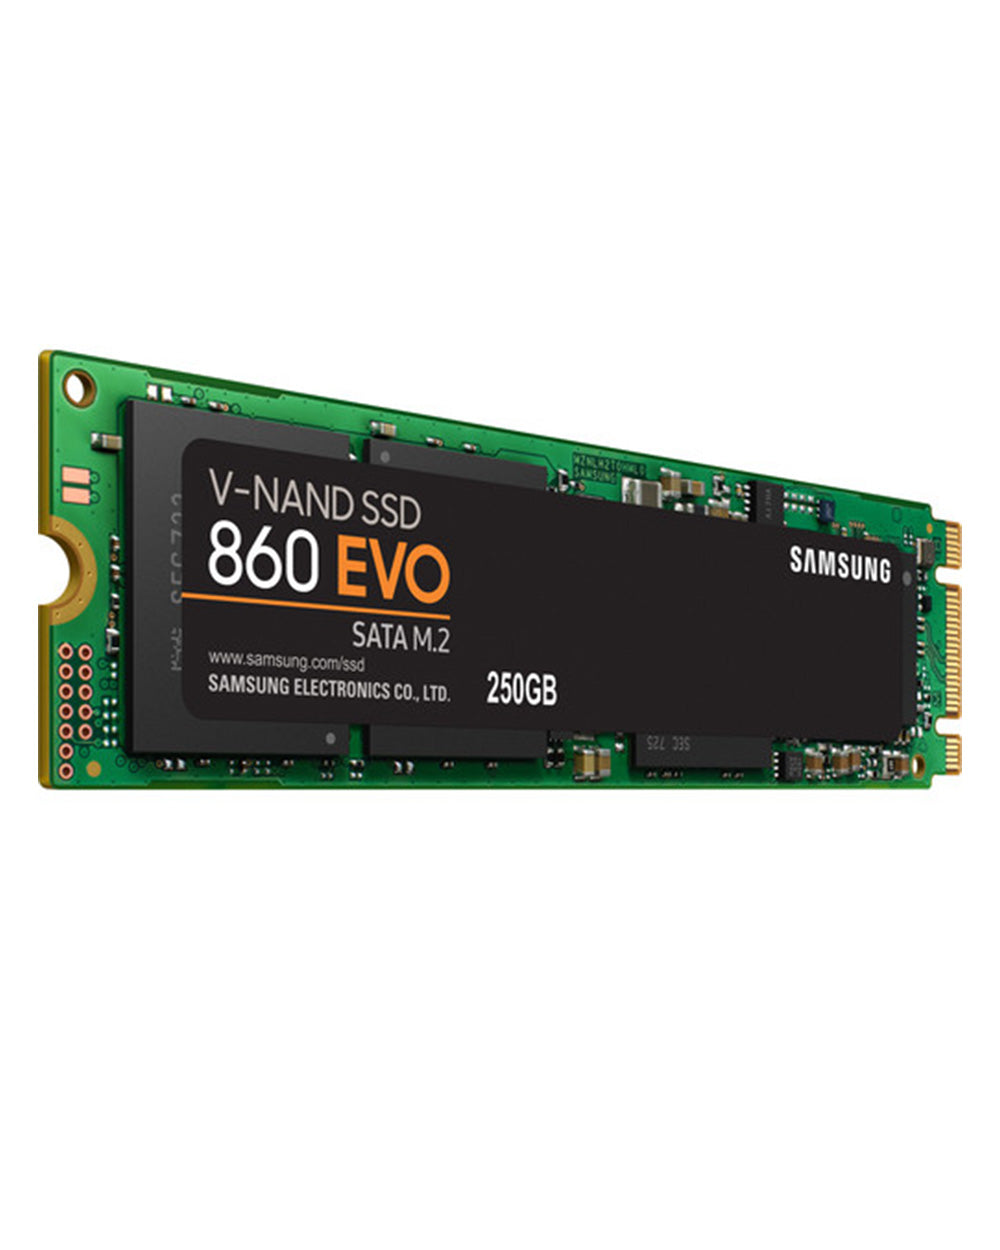 Add a 250GB - SAMSUNG 860 EVO M.2 2280 SATA III - MZ-N6E250BW to your NAS for only $79.00 from $79.00